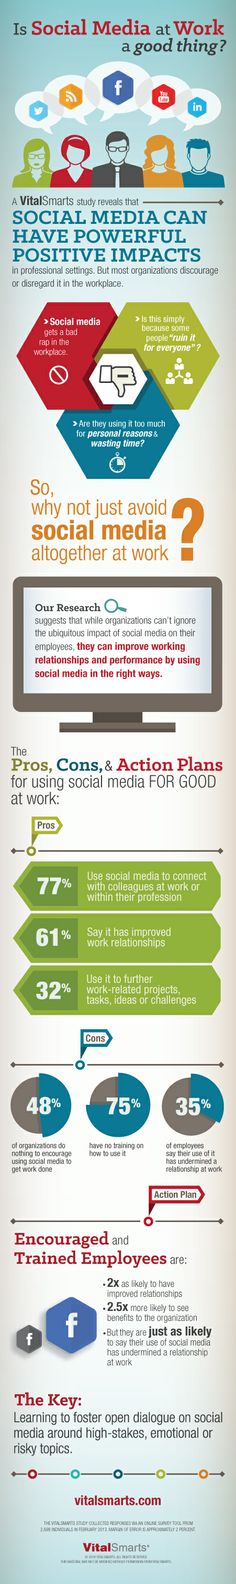 Can social media at work be a good thing?  Some interesting results came from our survey, including: - 77% use it to connect w/ others at work or their profession - 61% say it has improved work relationships - 32% use it to further work-related projects or challenges   (FOXBusiness also reported on our study): http://www.foxbusiness.com/personal-finance/2014/05/01/case-for-embracing-social-media-at-work/